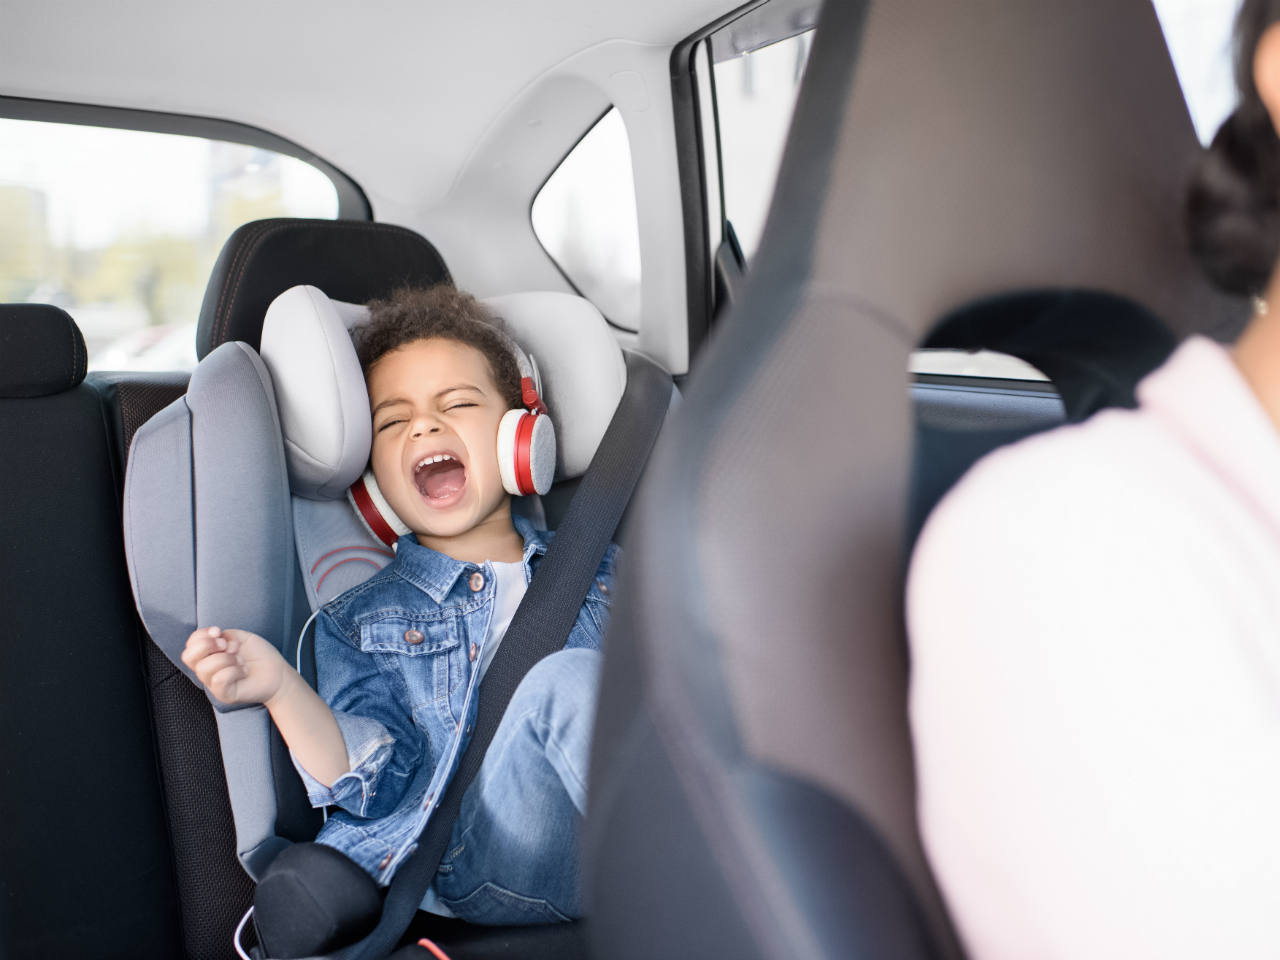 A little boy singing in the backseat of a car